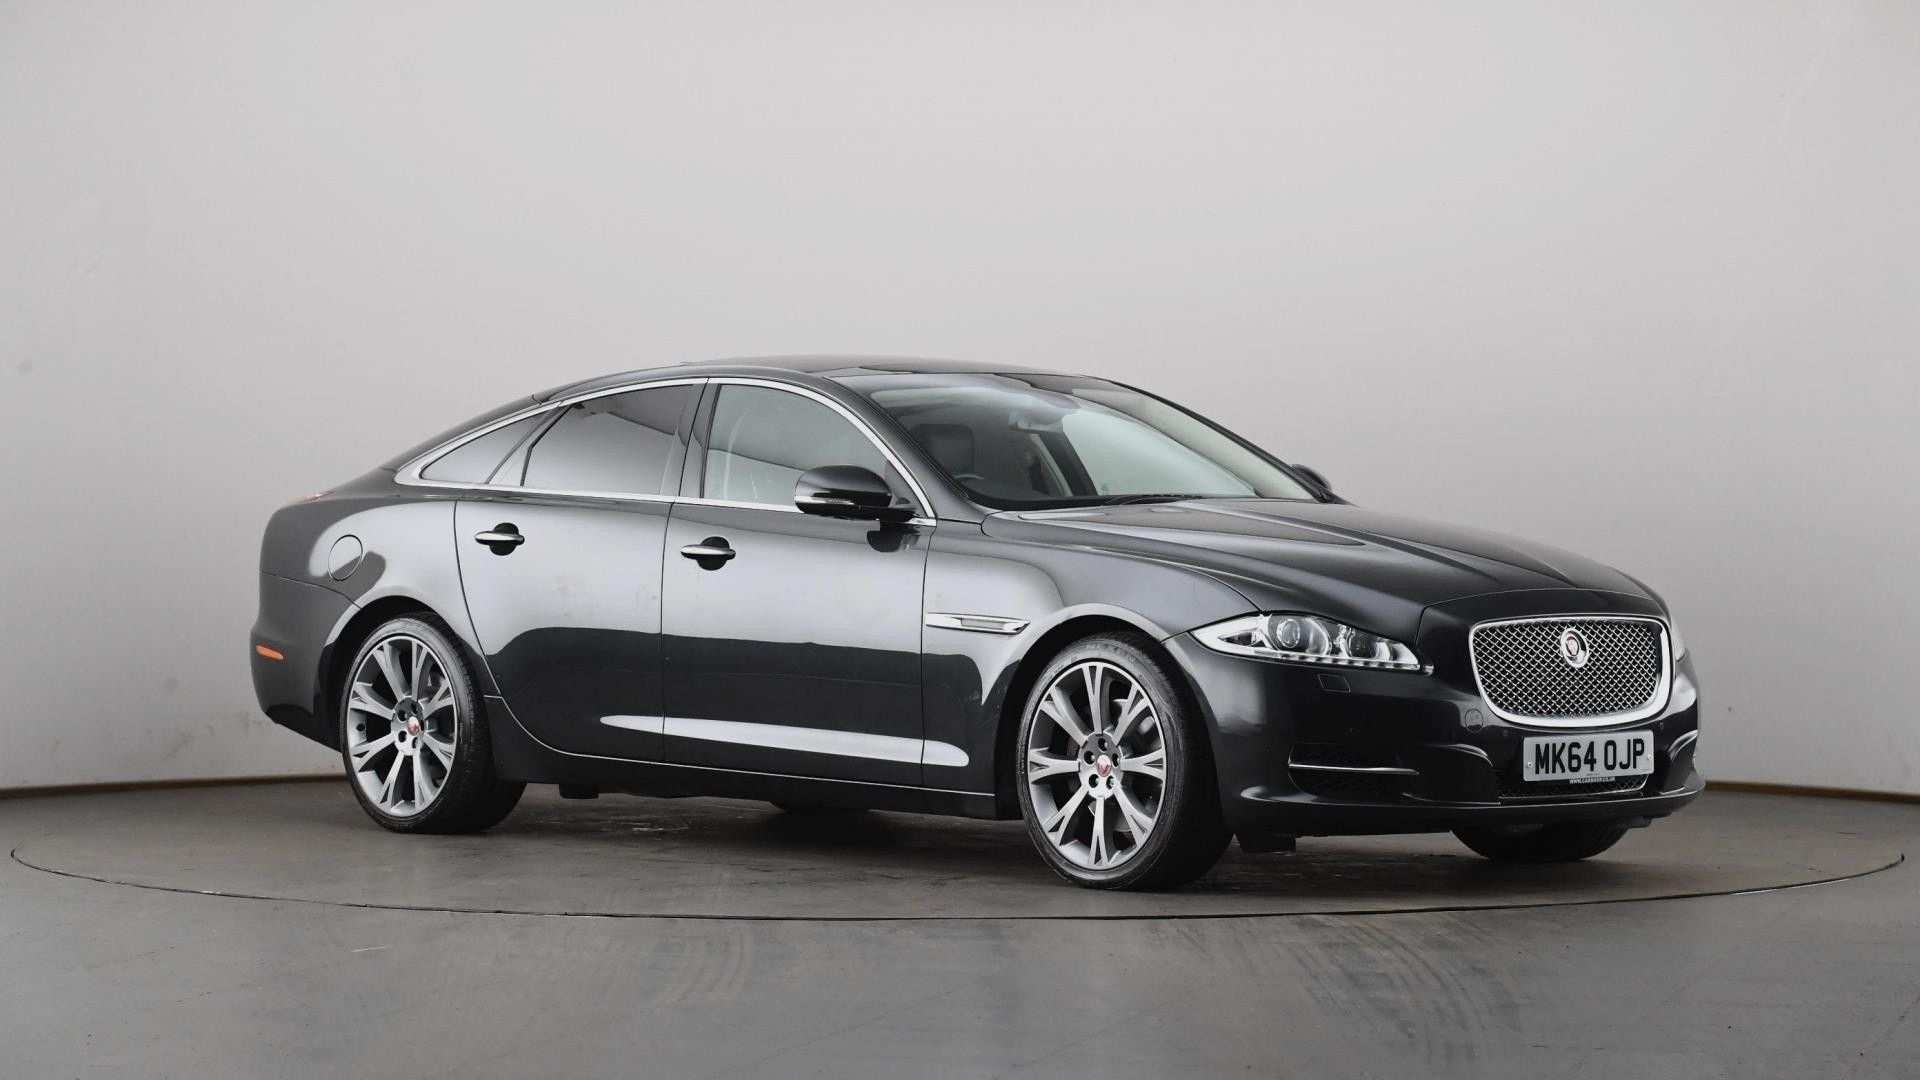 34 New 2020 Jaguar Xj Launch Date Pricing for 2020 Jaguar Xj Launch Date